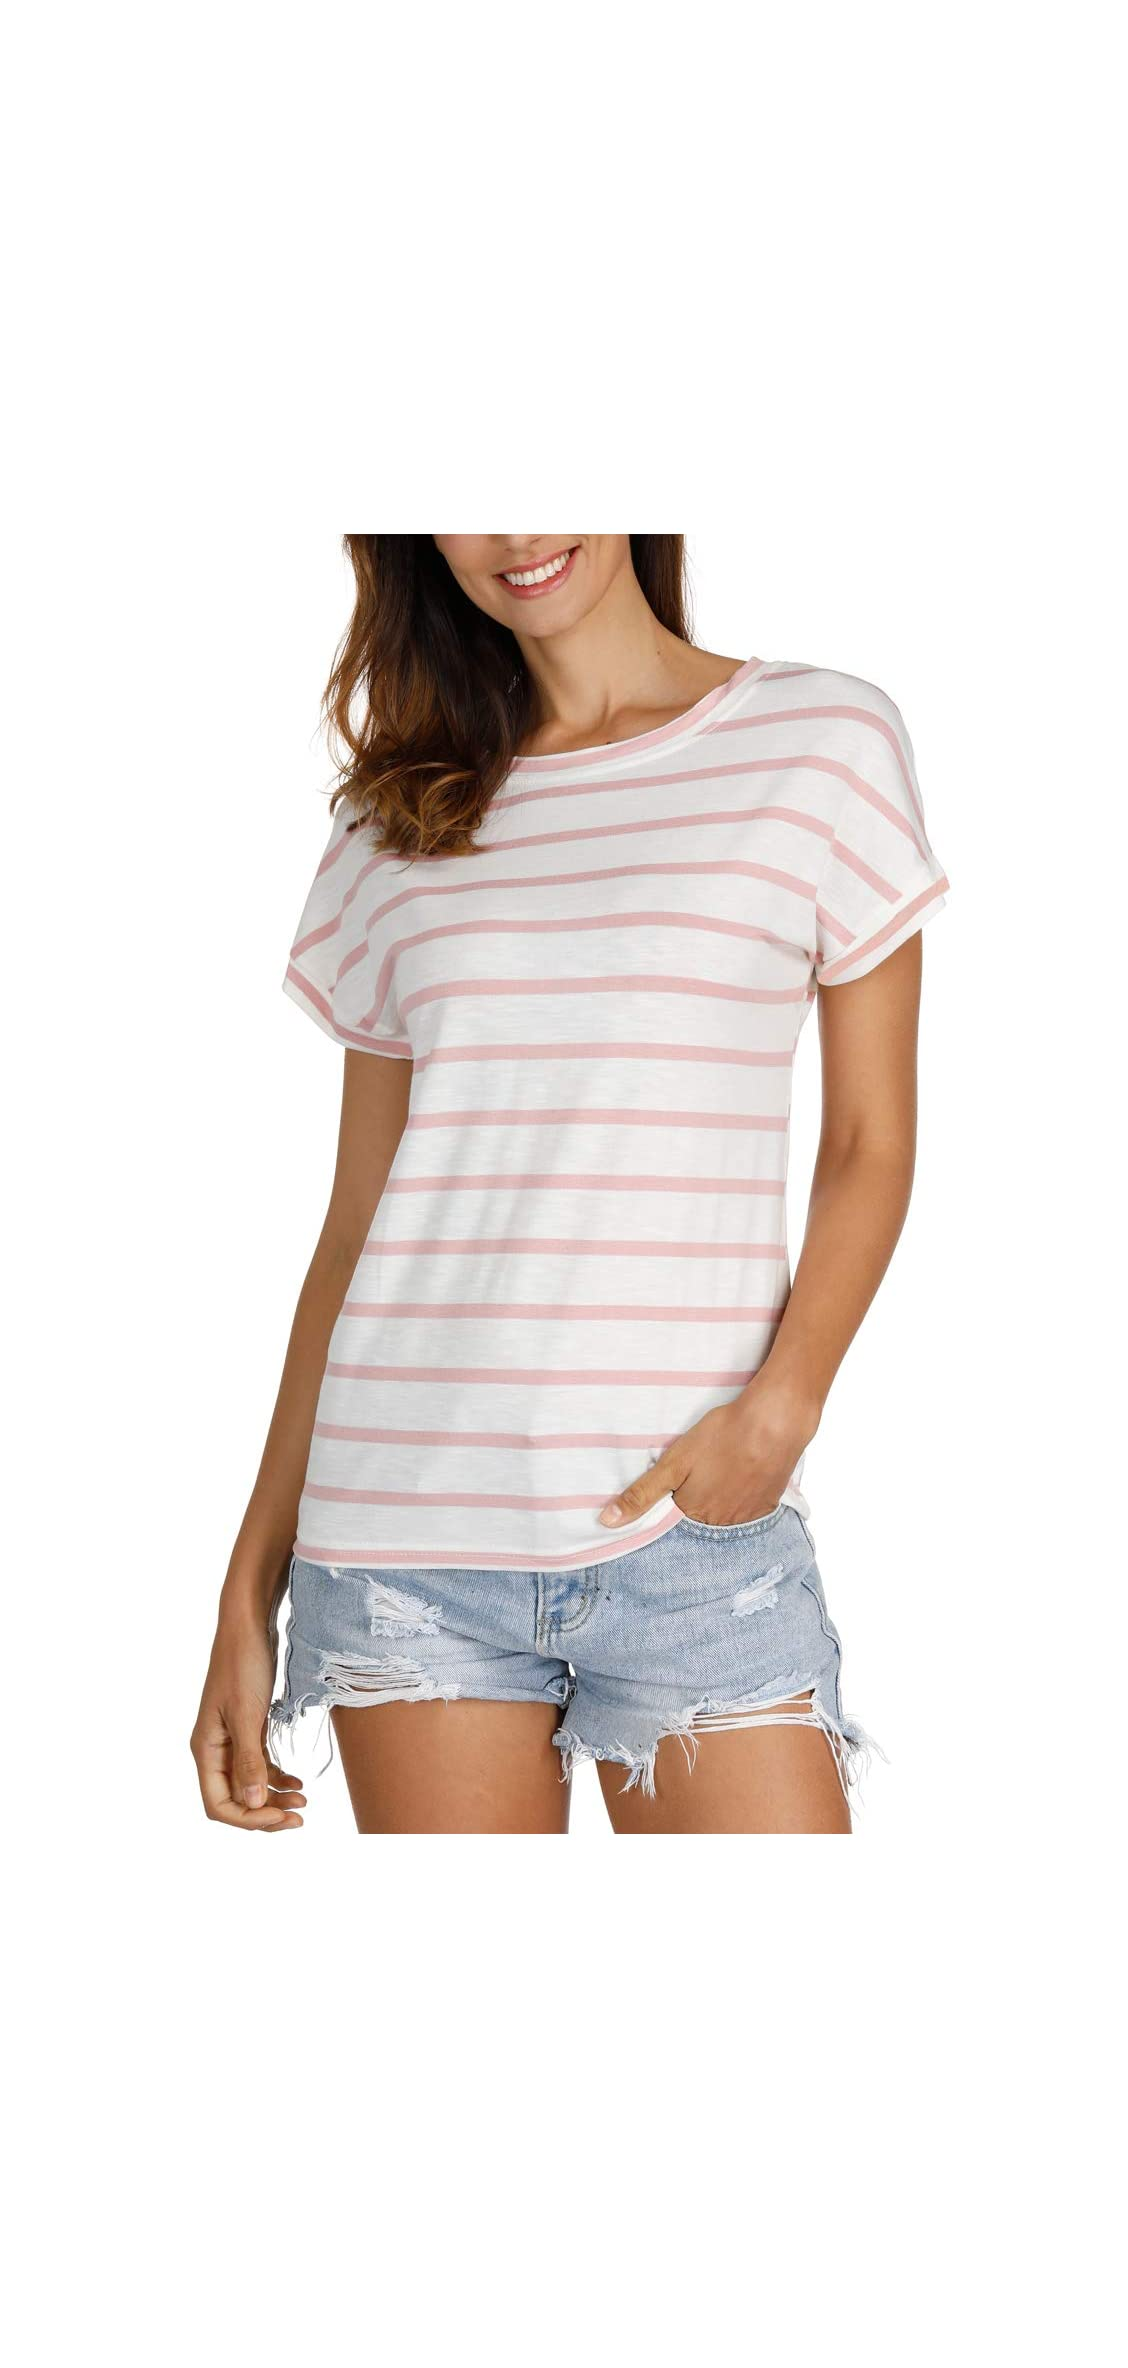 Women's Striped Tops Summer Casual Round Neck Short Sleeve